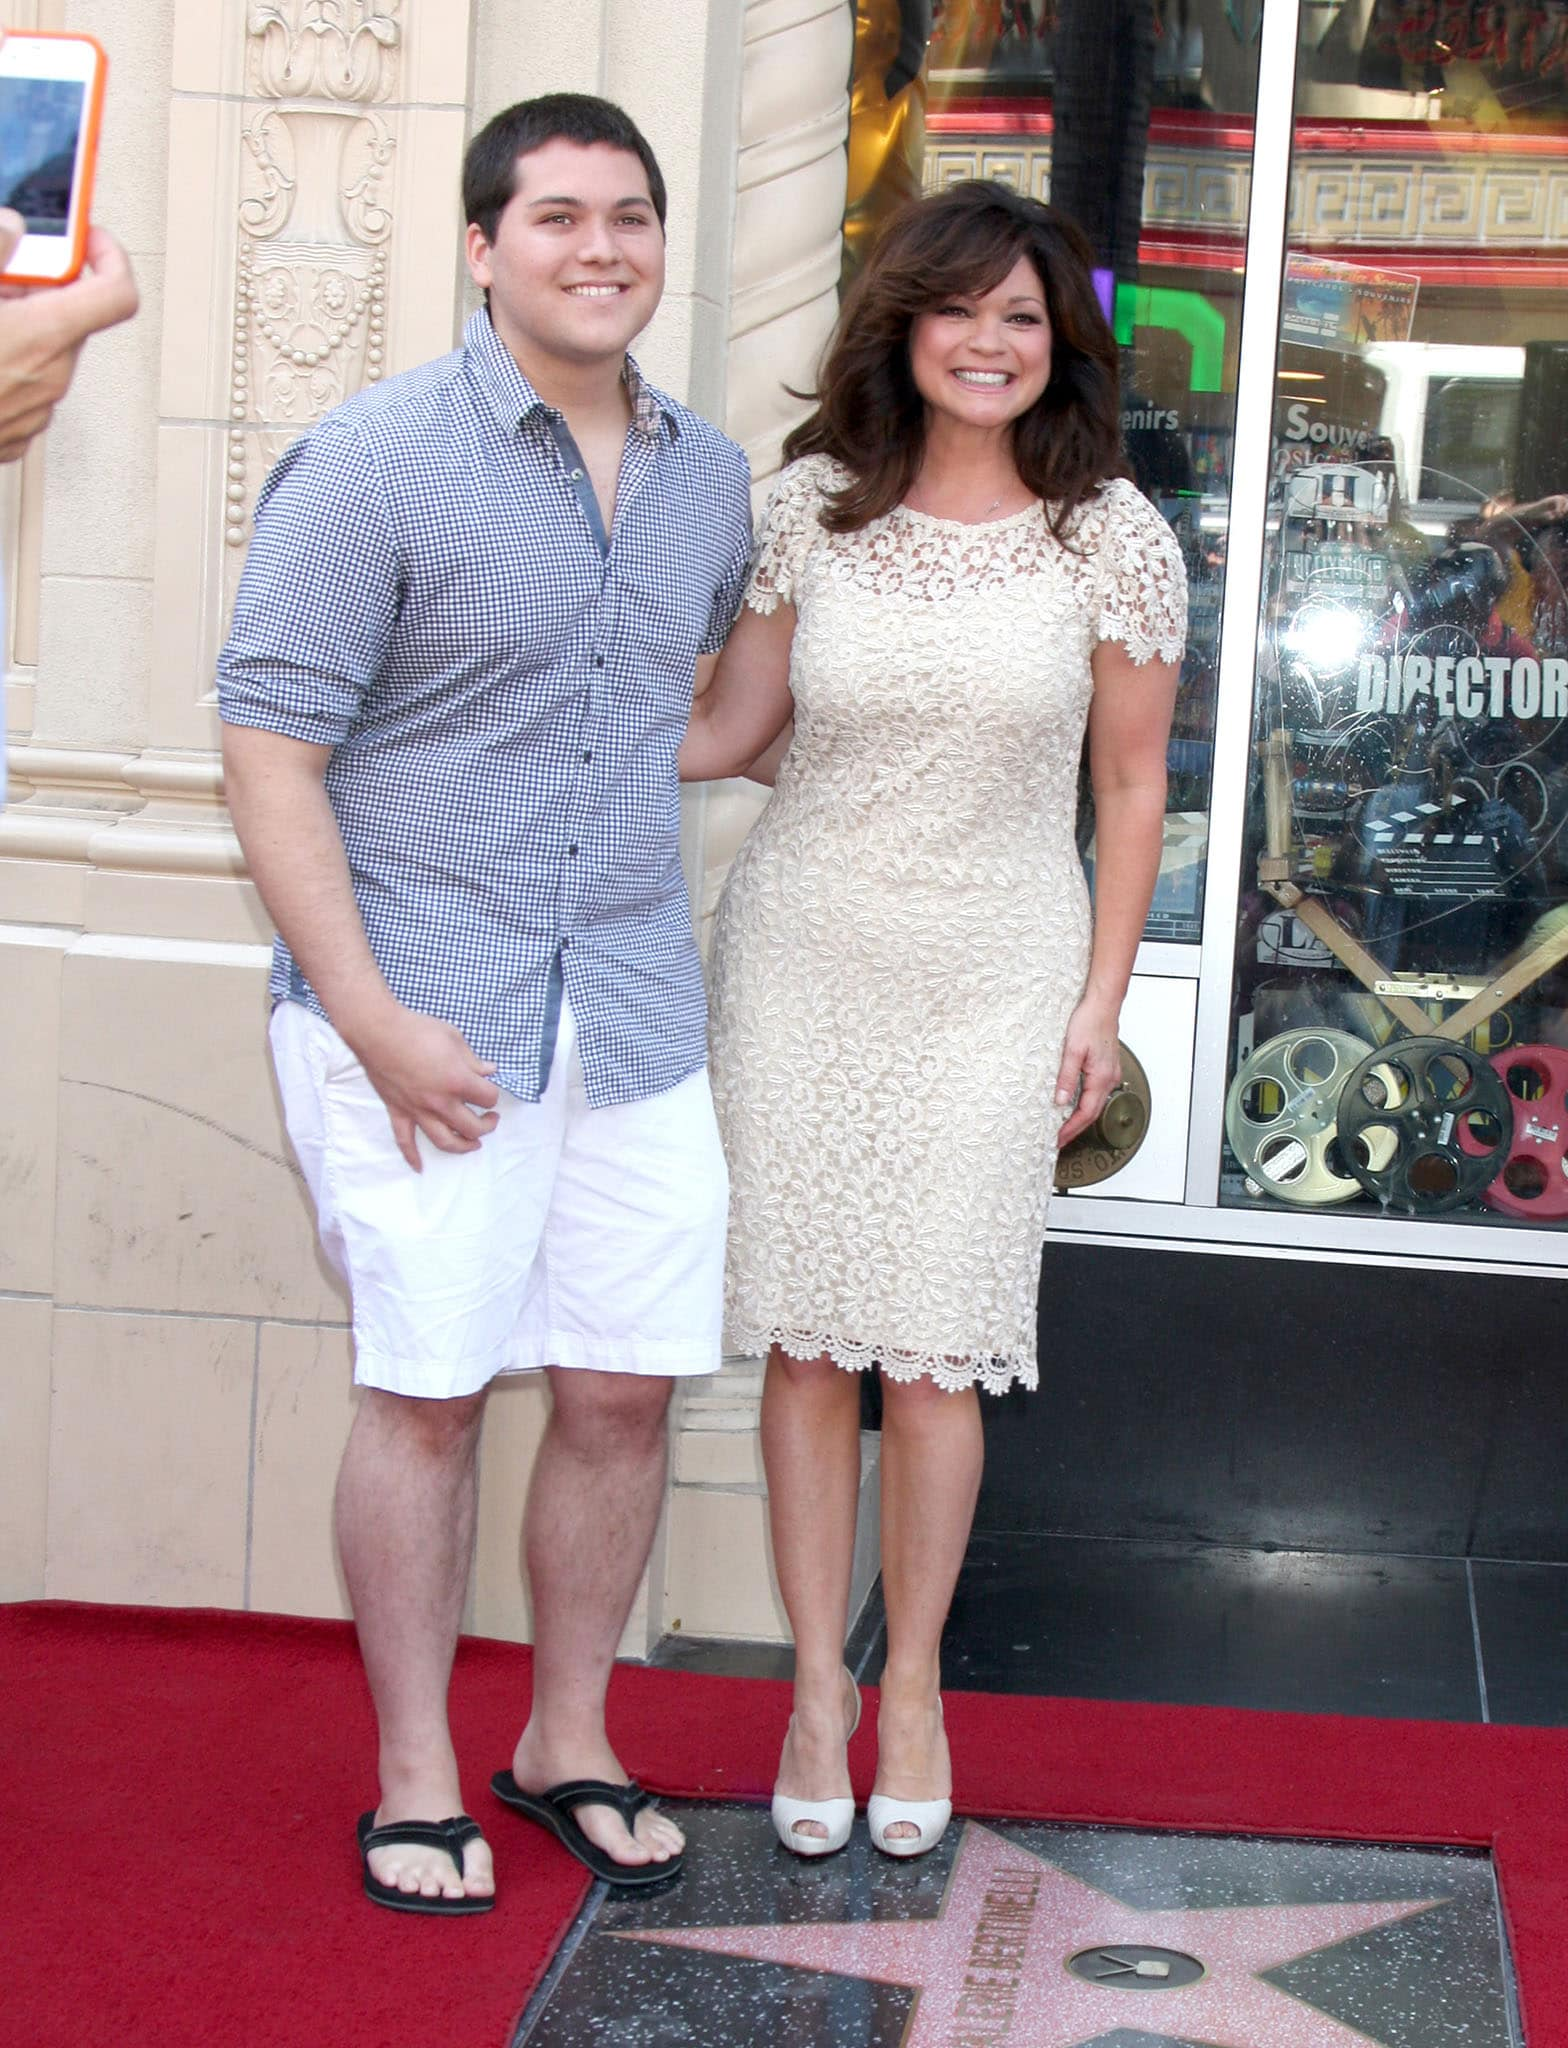 Eddie Van Halen's son Wolfgang and ex-wife Valerie Bertinelli honored with the 2,476th star on the Hollywood Walk of Fame on August 22, 2012